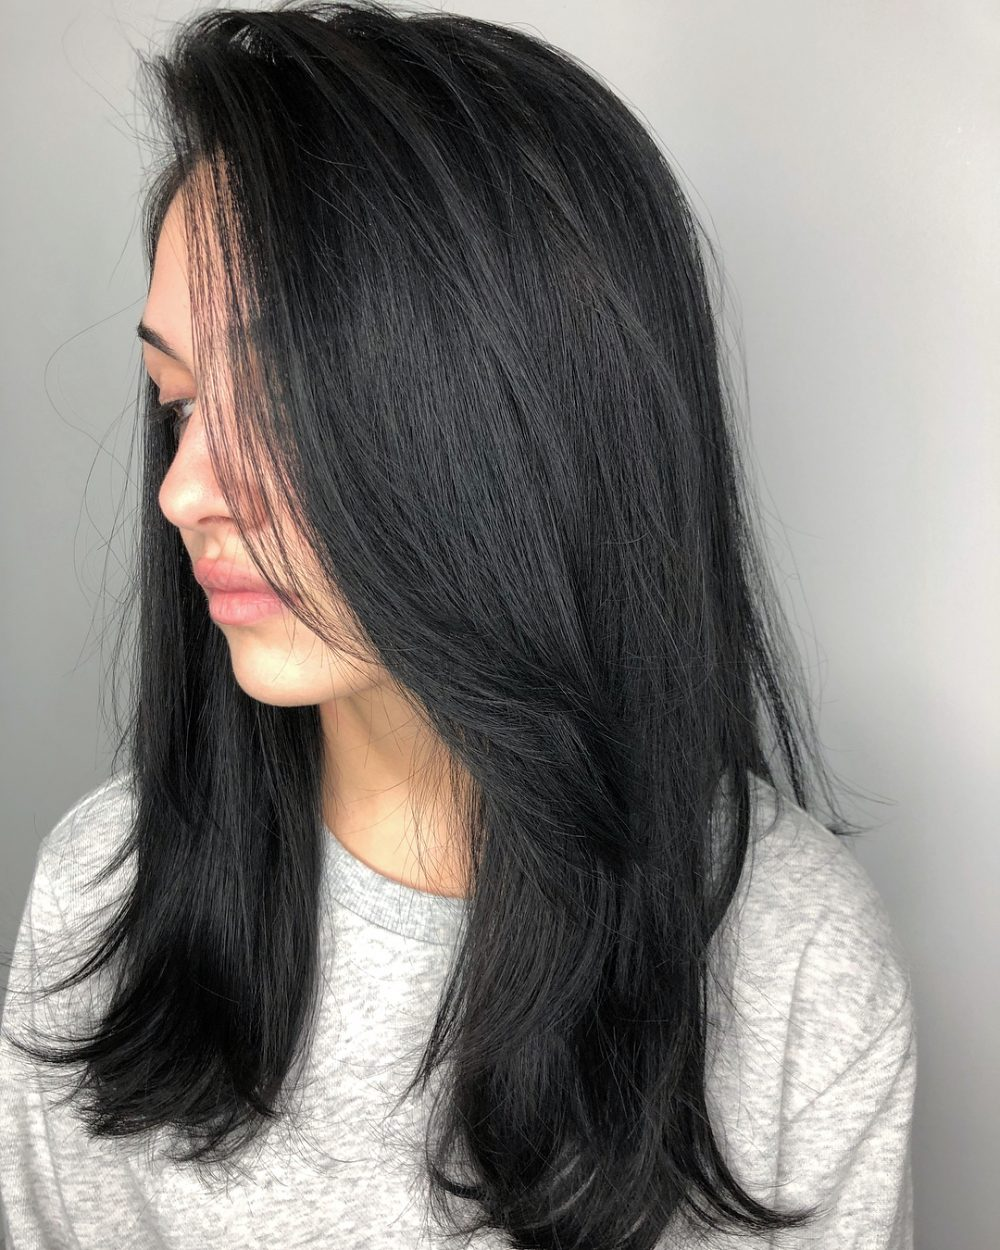 Free Flowing hairstyle